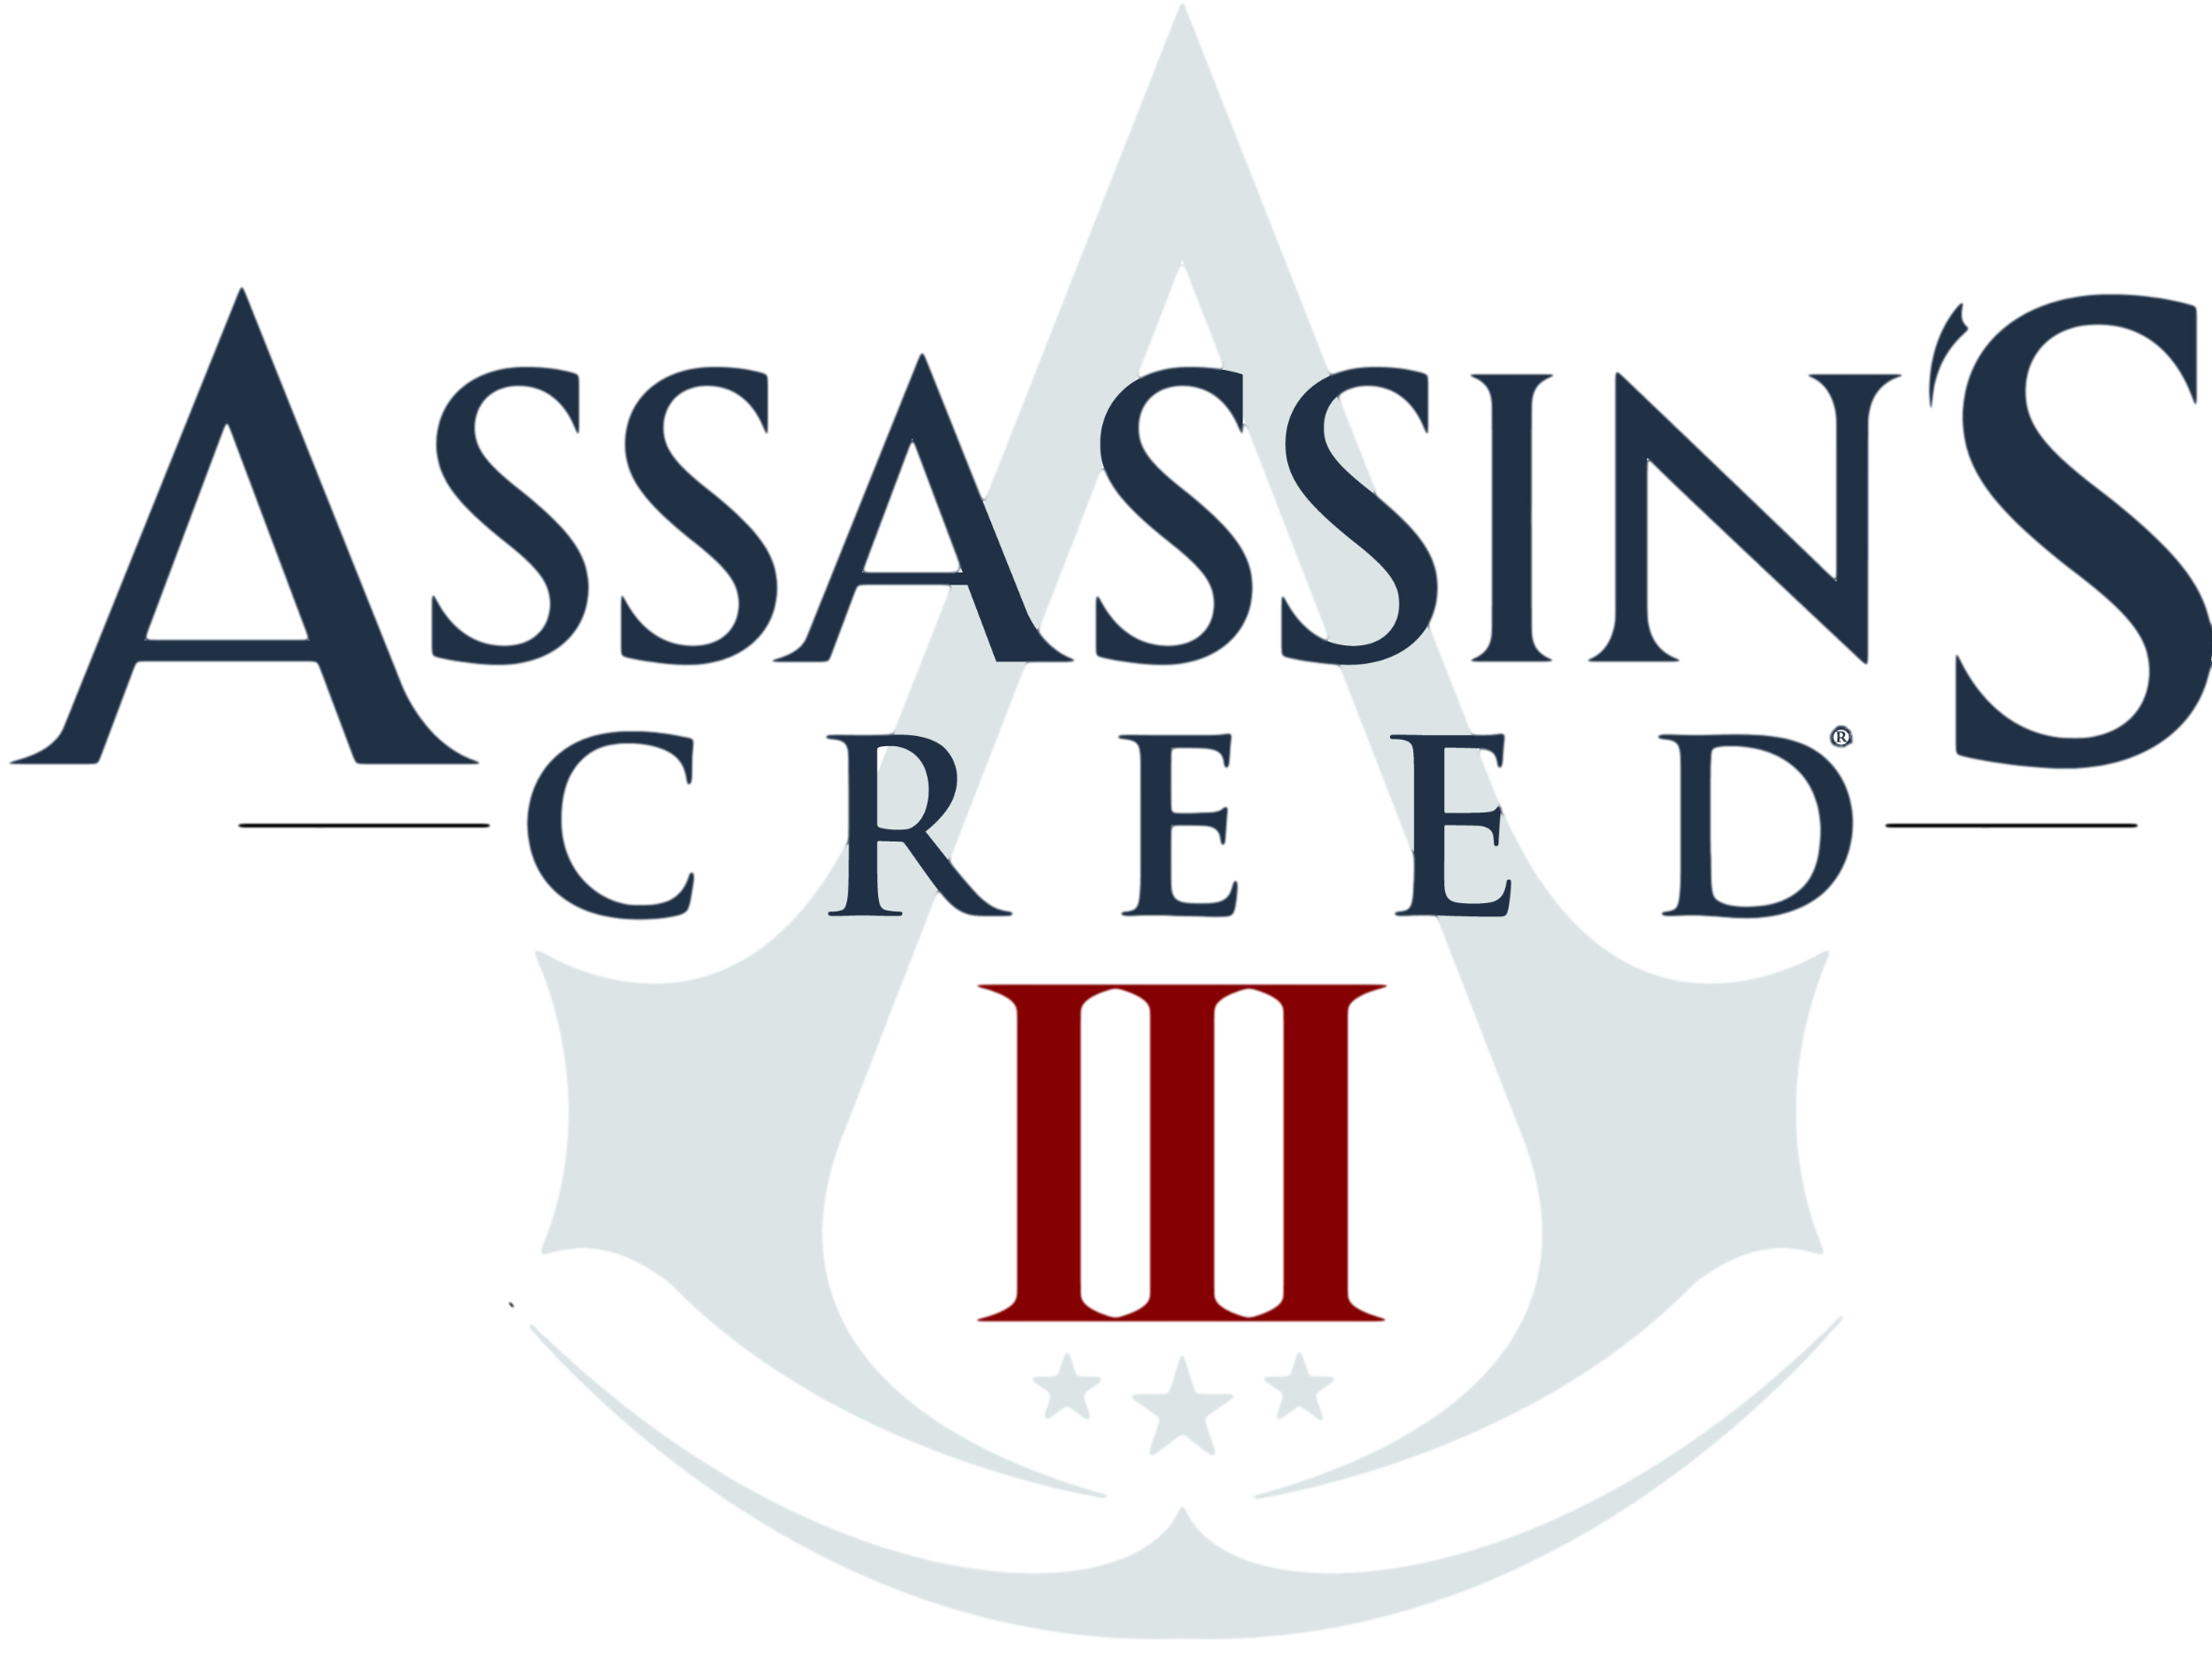 Assassins Creed Iii Png Free Assassins Creed Iii Png Transparent